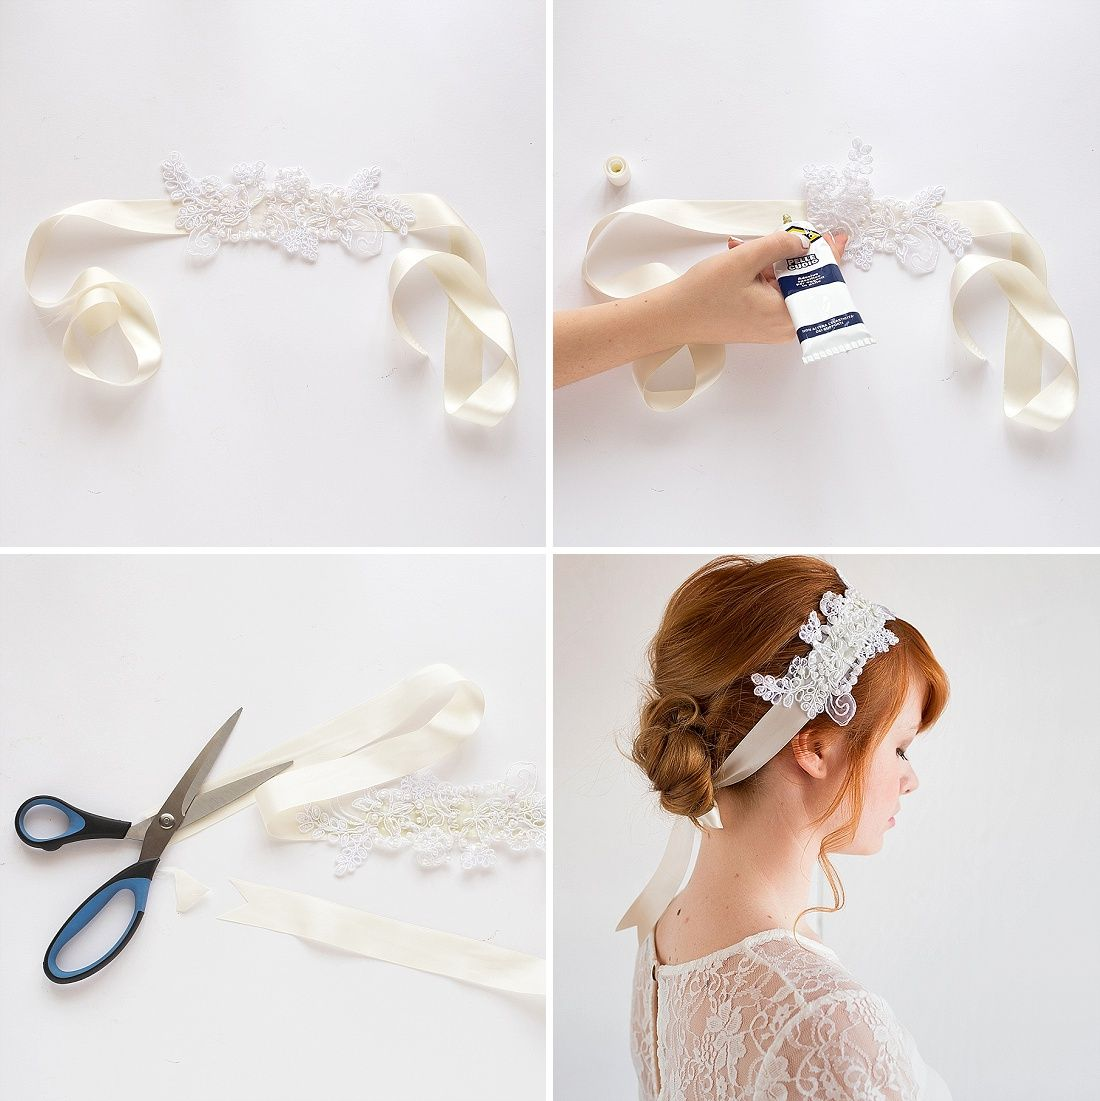 Diy beaded bridal headpiece - How To Make A Gorgeous Wedding Hair Accessory In Less Than 5 Minutes